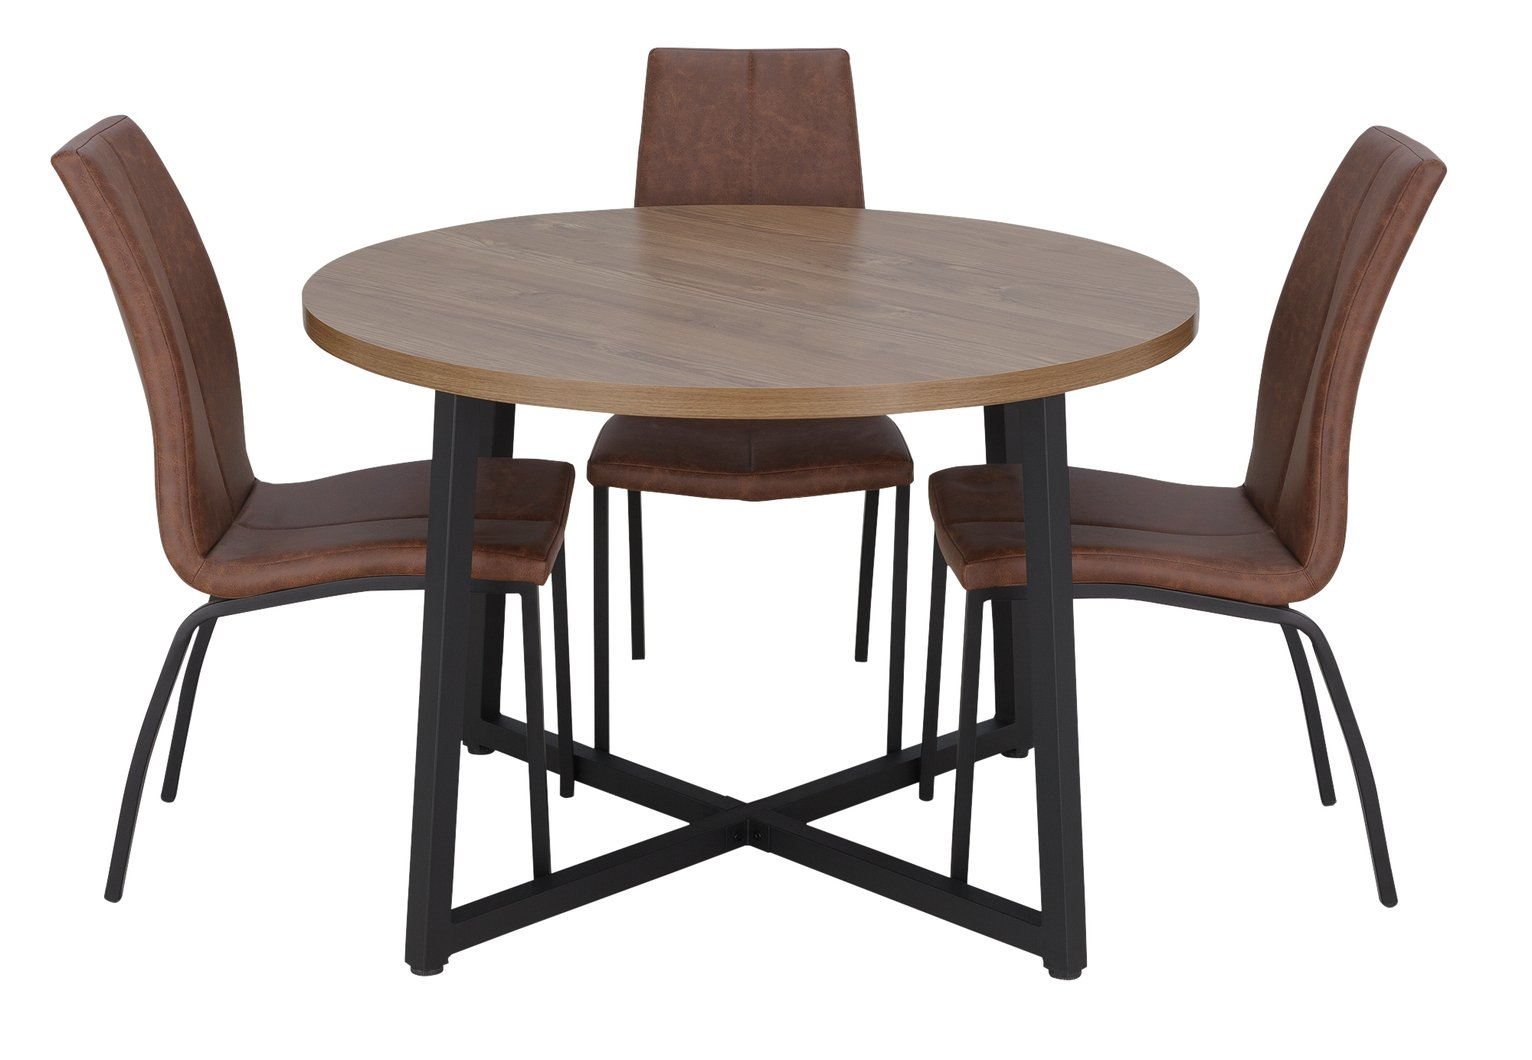 Argos Home Nomad Round Dining Table and 4 Chairs Reviews